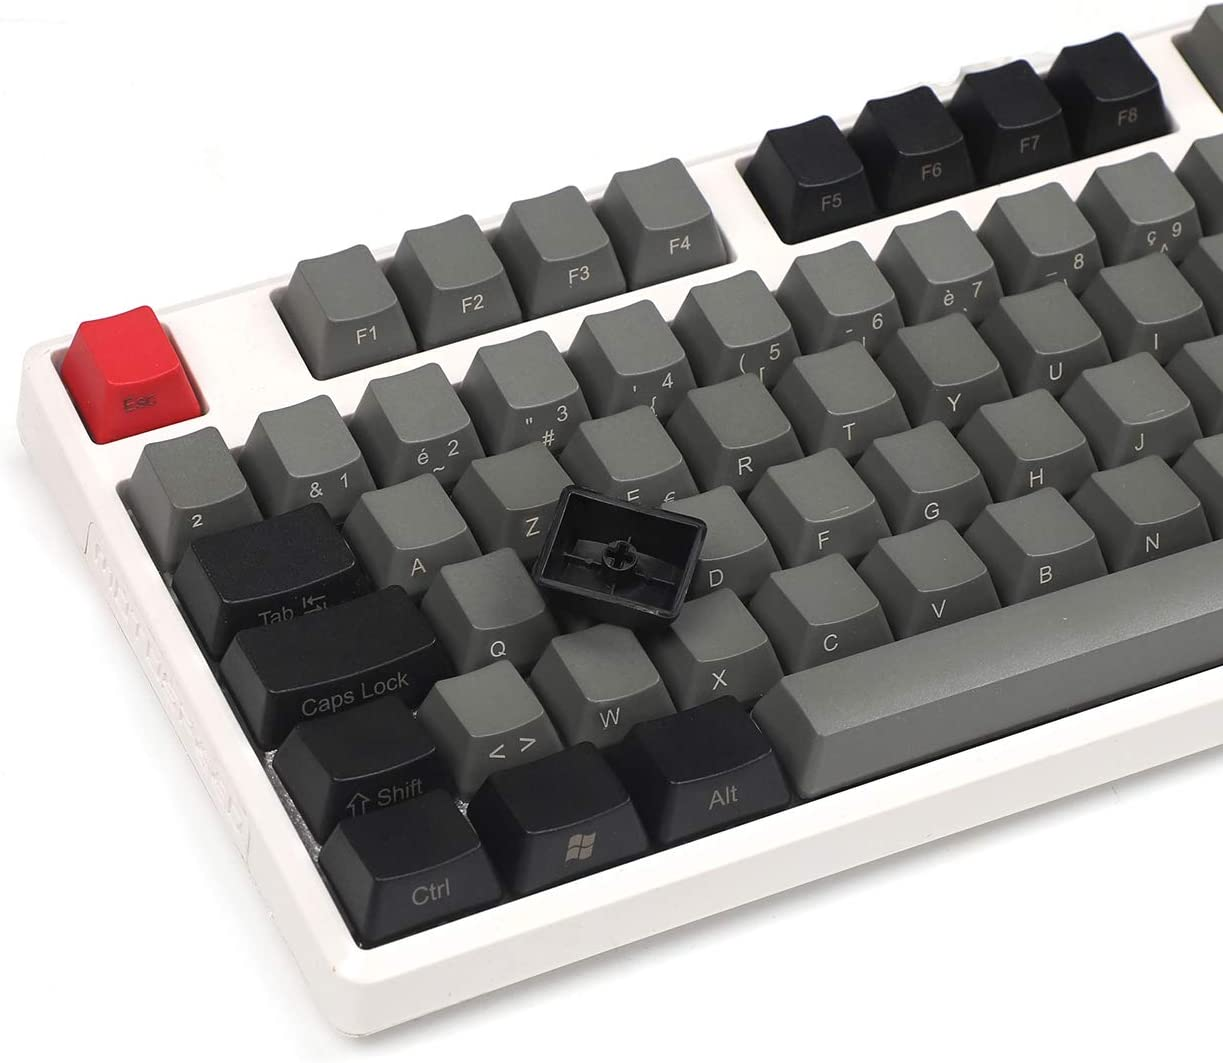 Dolch Only Keycap 105 Key Side-Printed YMDK Thick PBT Keycap Azerty Keycap Set French ISO Layout OEM Profile for MX Switches Mechanical Keyboard